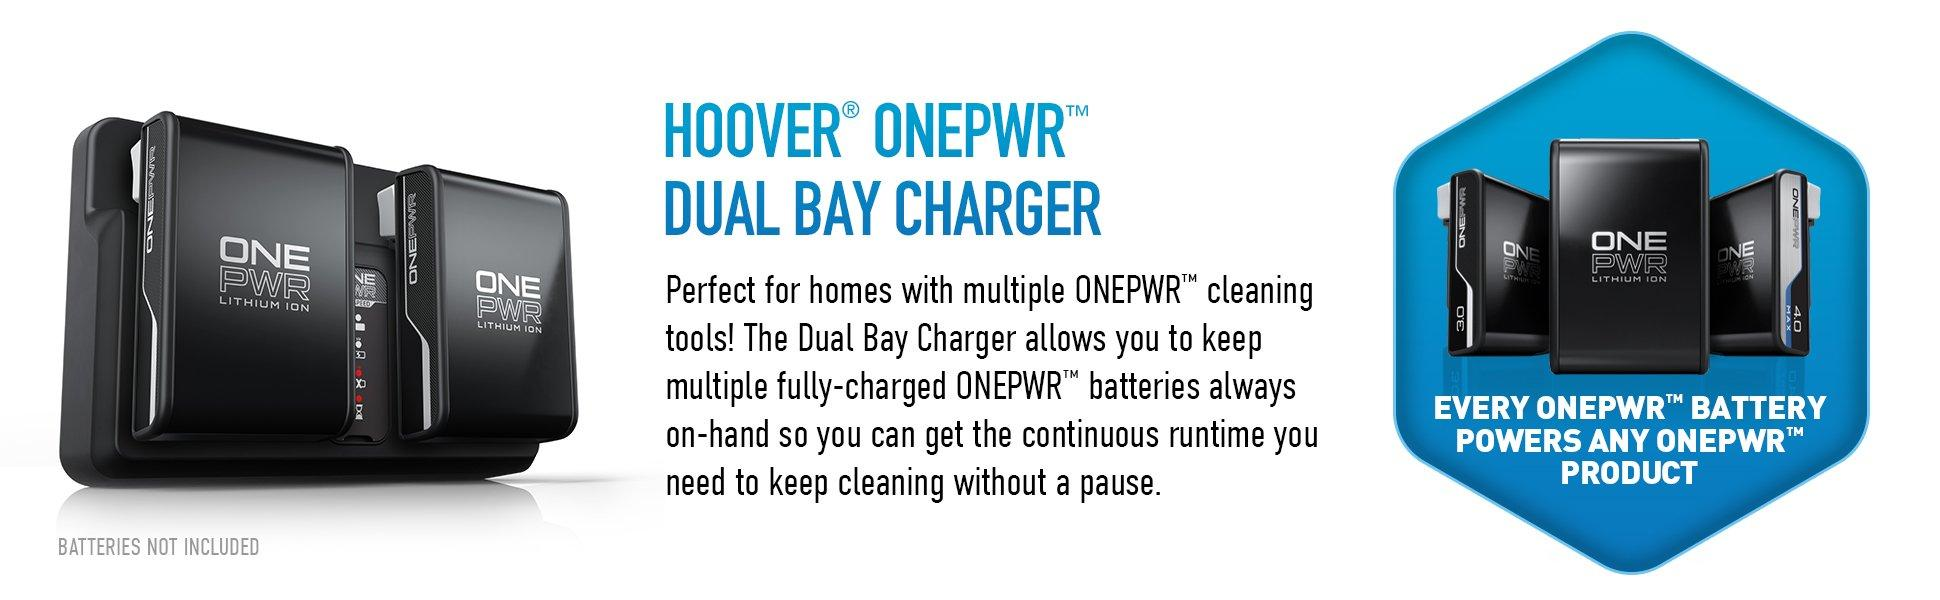 Dual Bay Charger